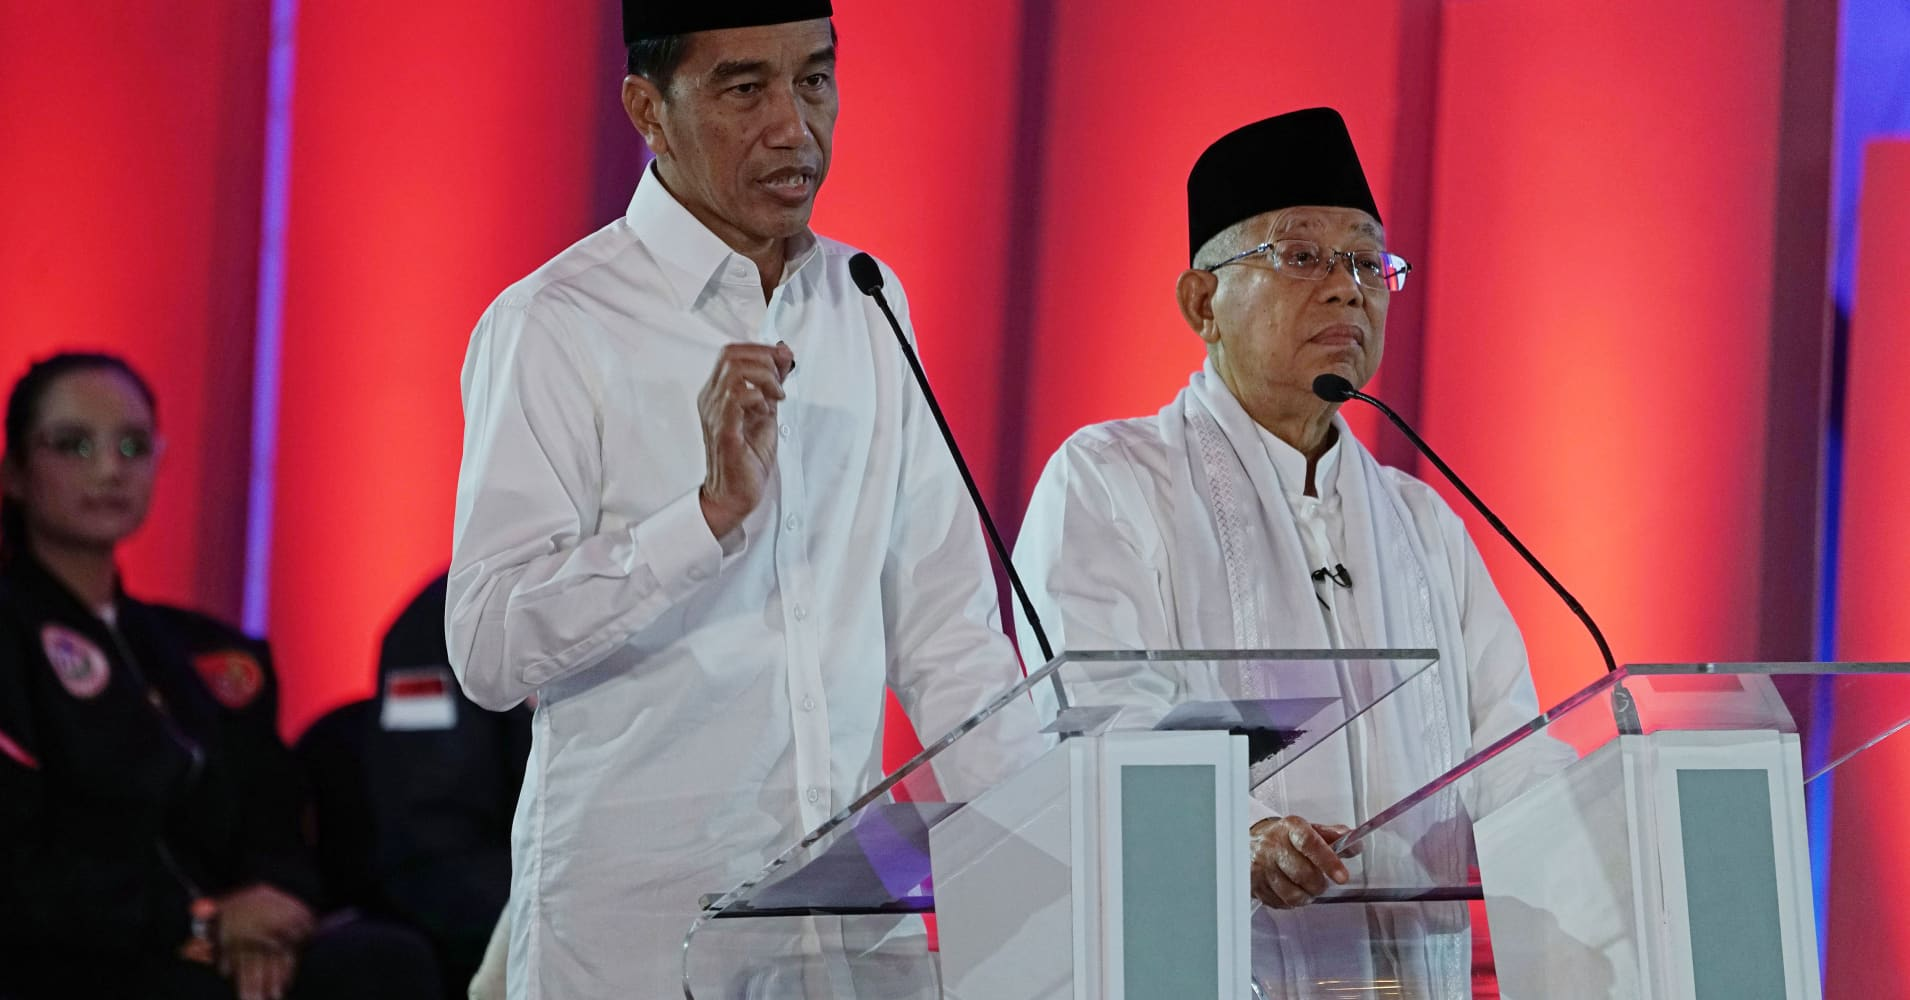 Religion and economy will take center stage as Indonesia's president seeks re-election, experts say